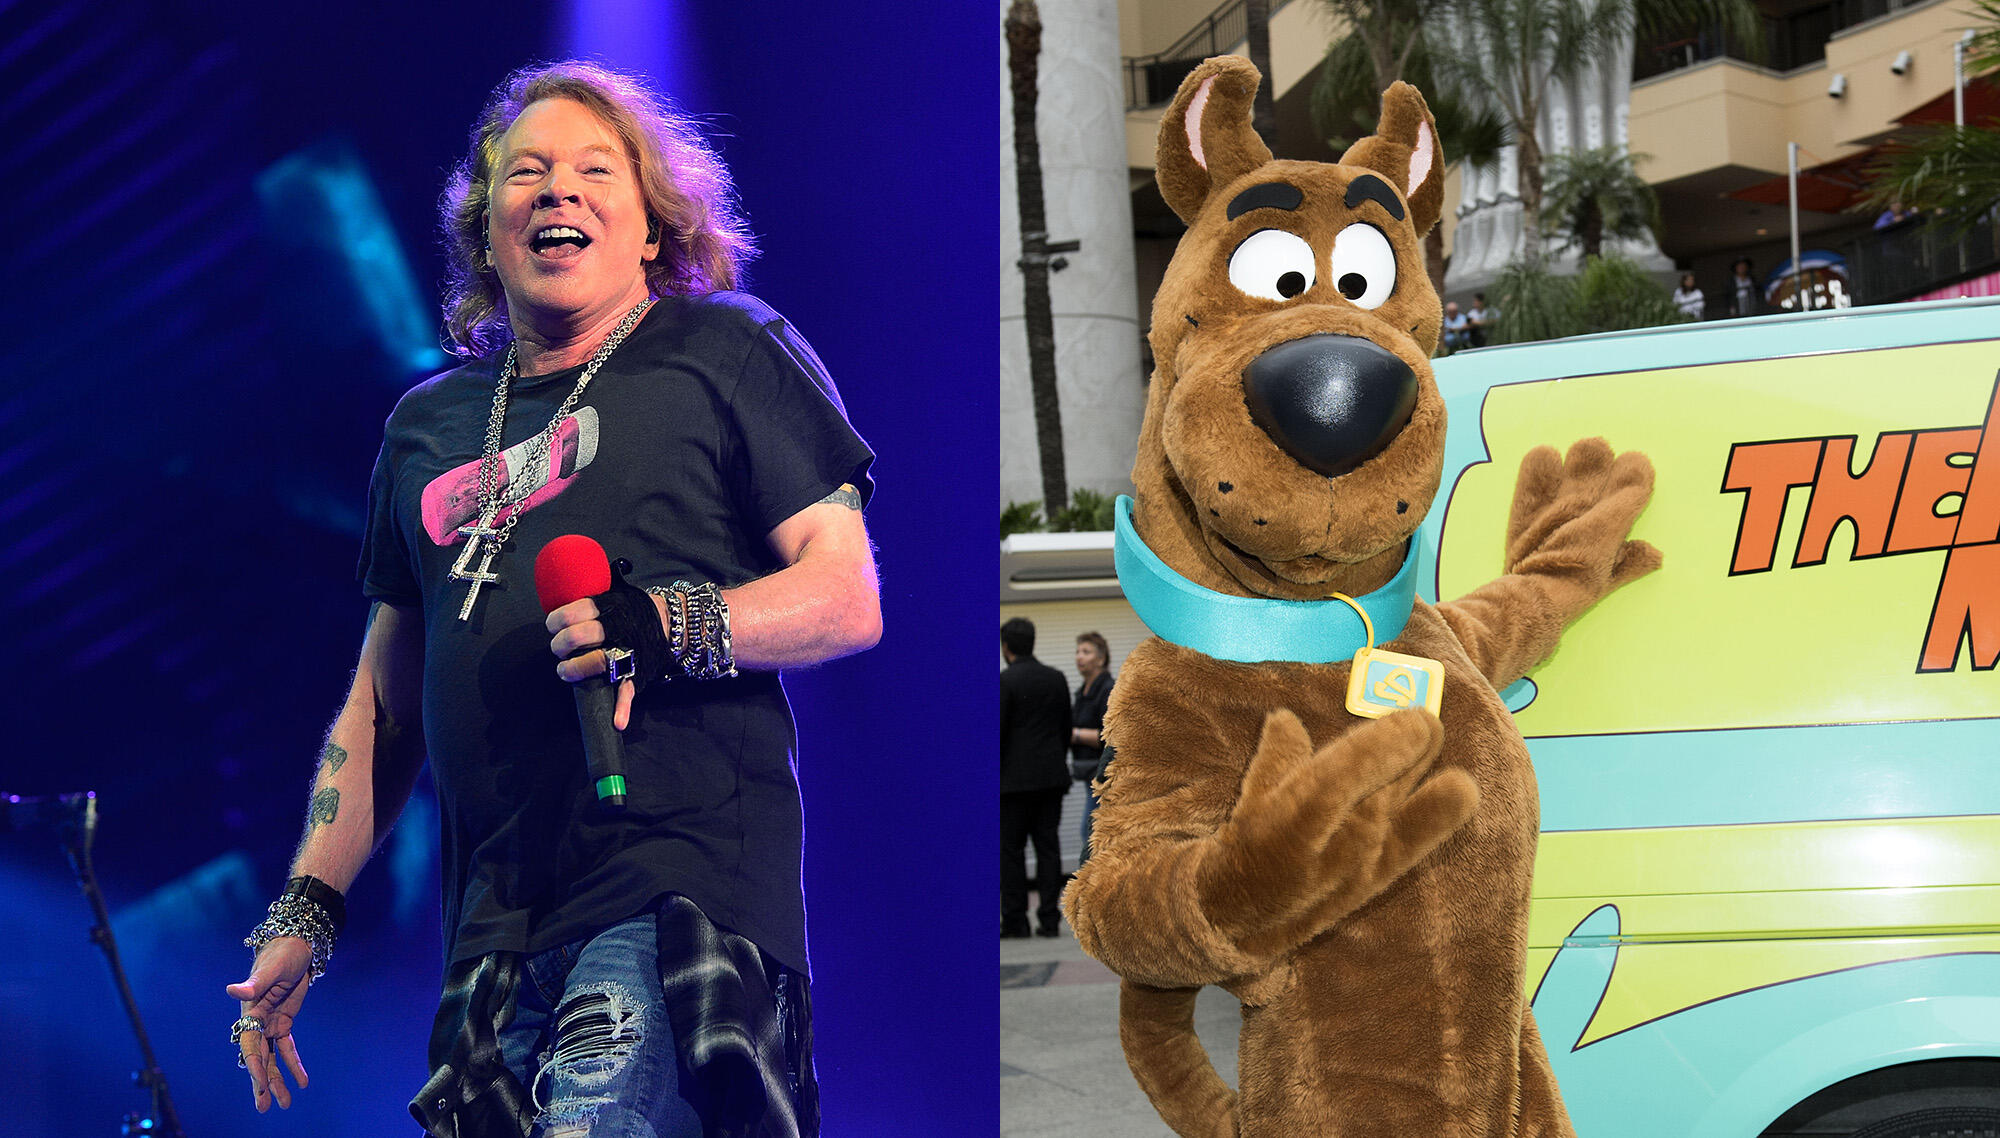 Axl Rose To Make Animated Cameo In Thursday Episode Of 'Scooby Doo'